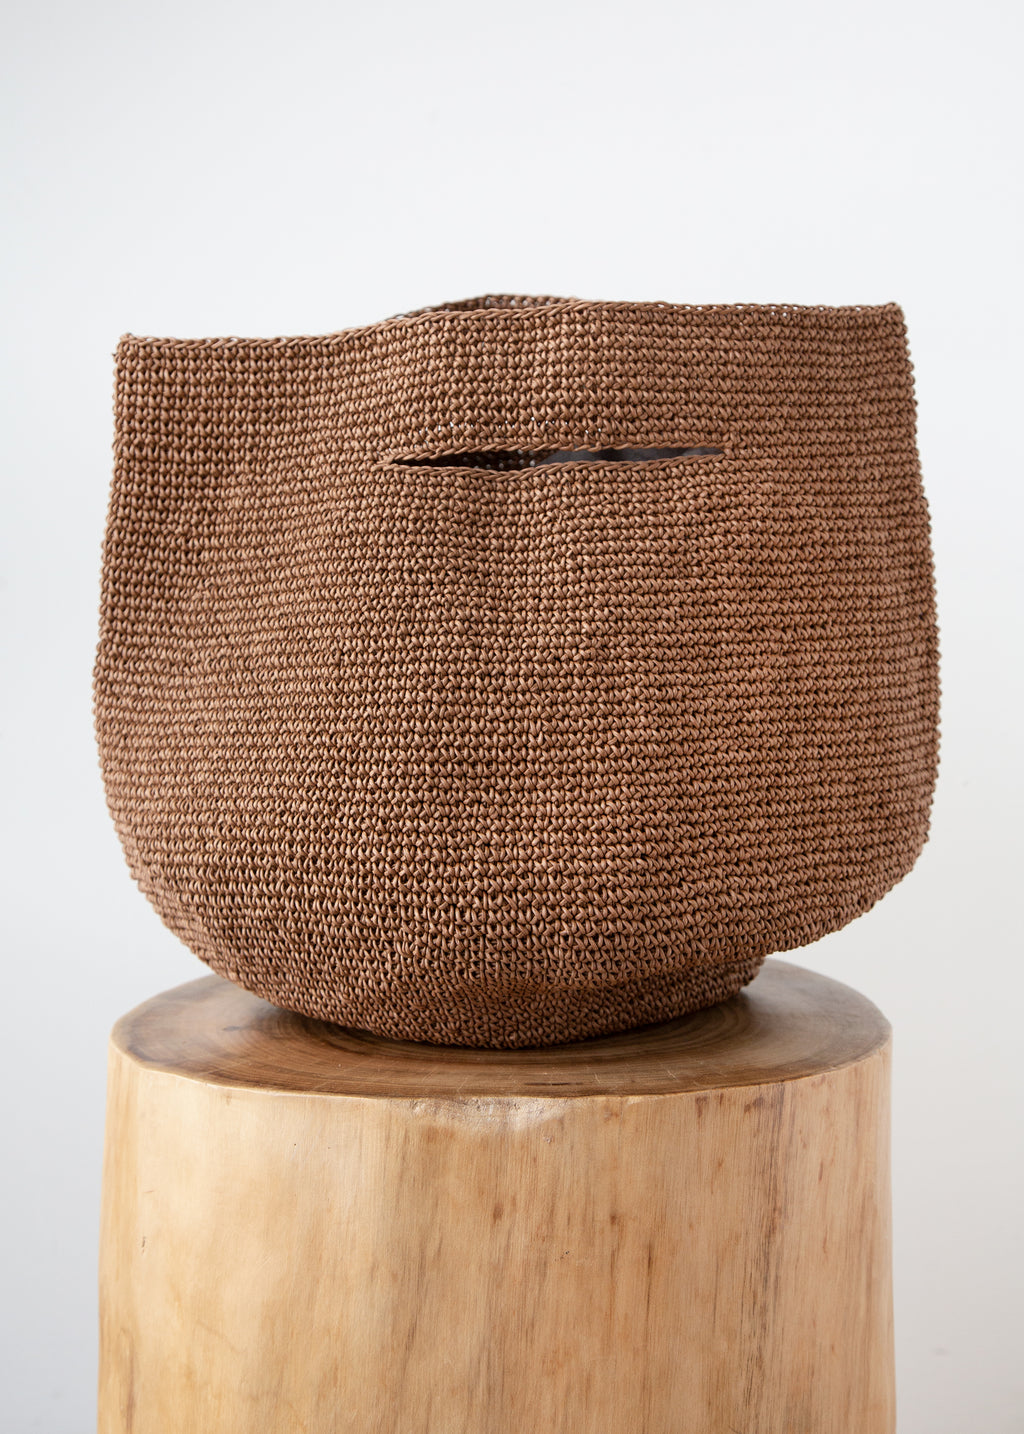 Bowl Bag in Brown